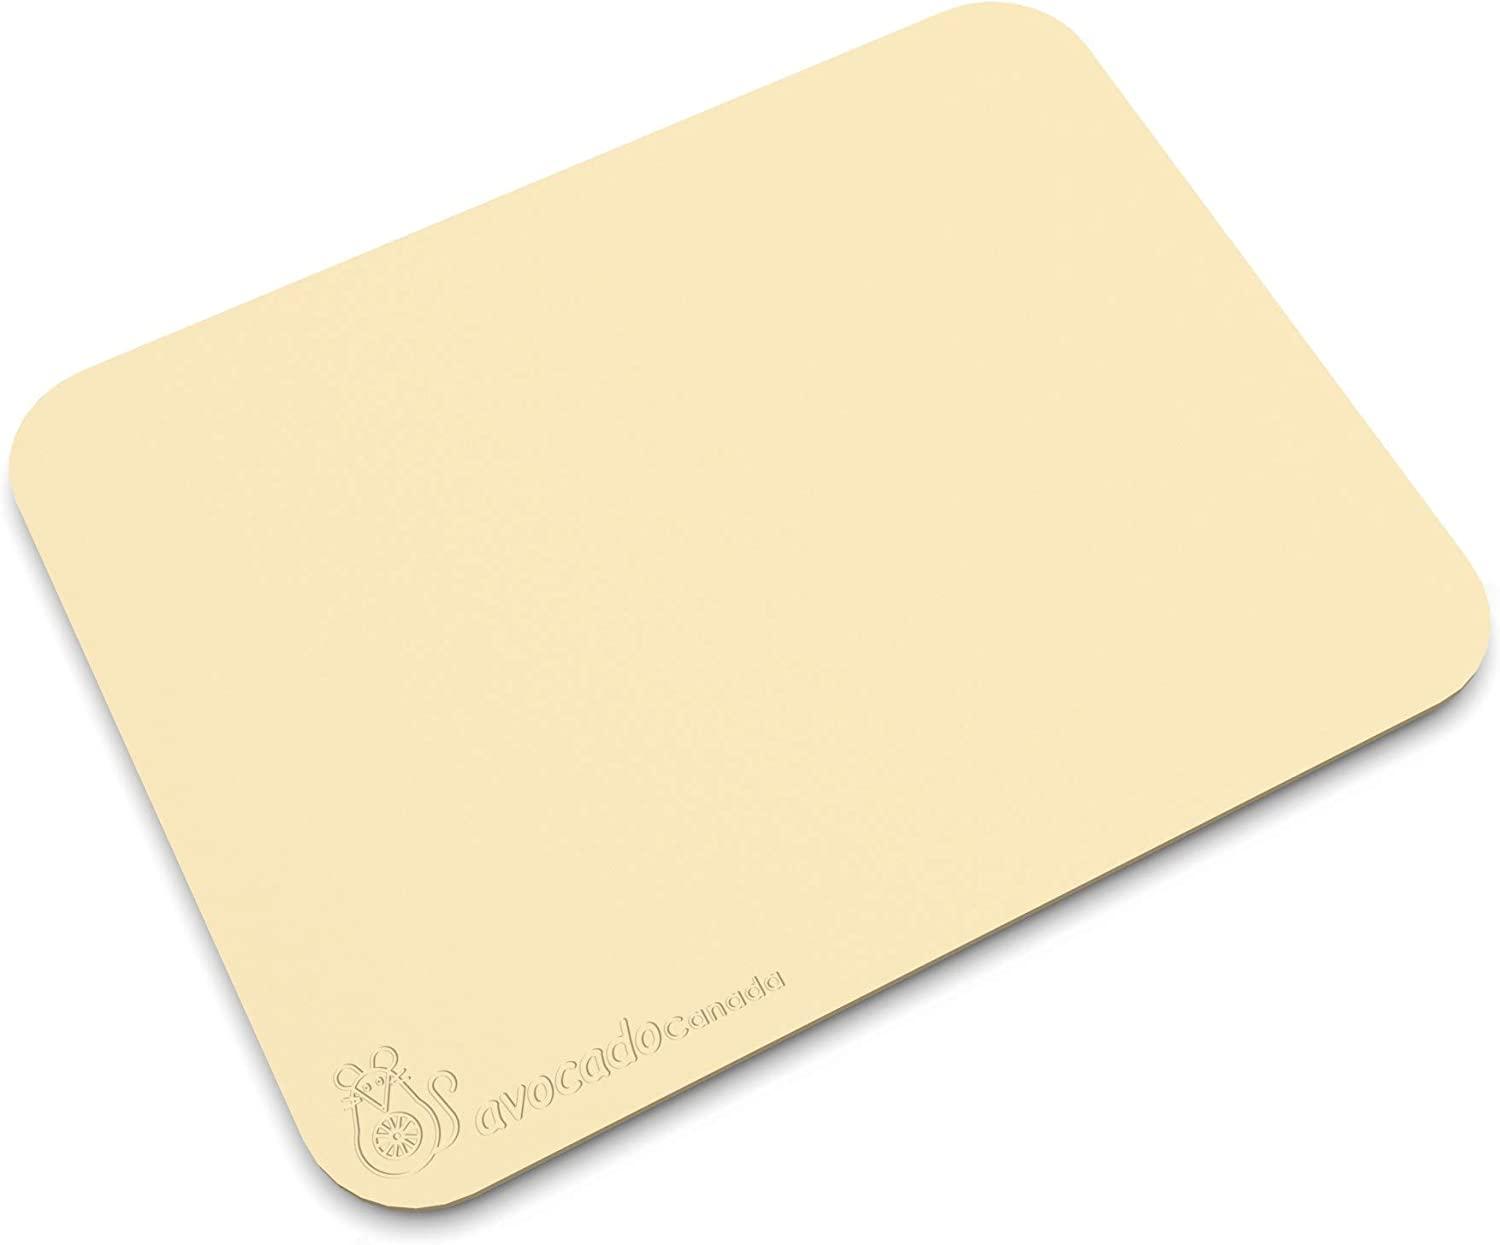 Antimicrobial & Antibacterial, Germs & Viruses Free - Aluminum & Copper Technology Mouse Pad, Gaming Pad, Aluminum Mouse Pad, Mouse Mat for Computer, Apple Magic, Approved by EPA